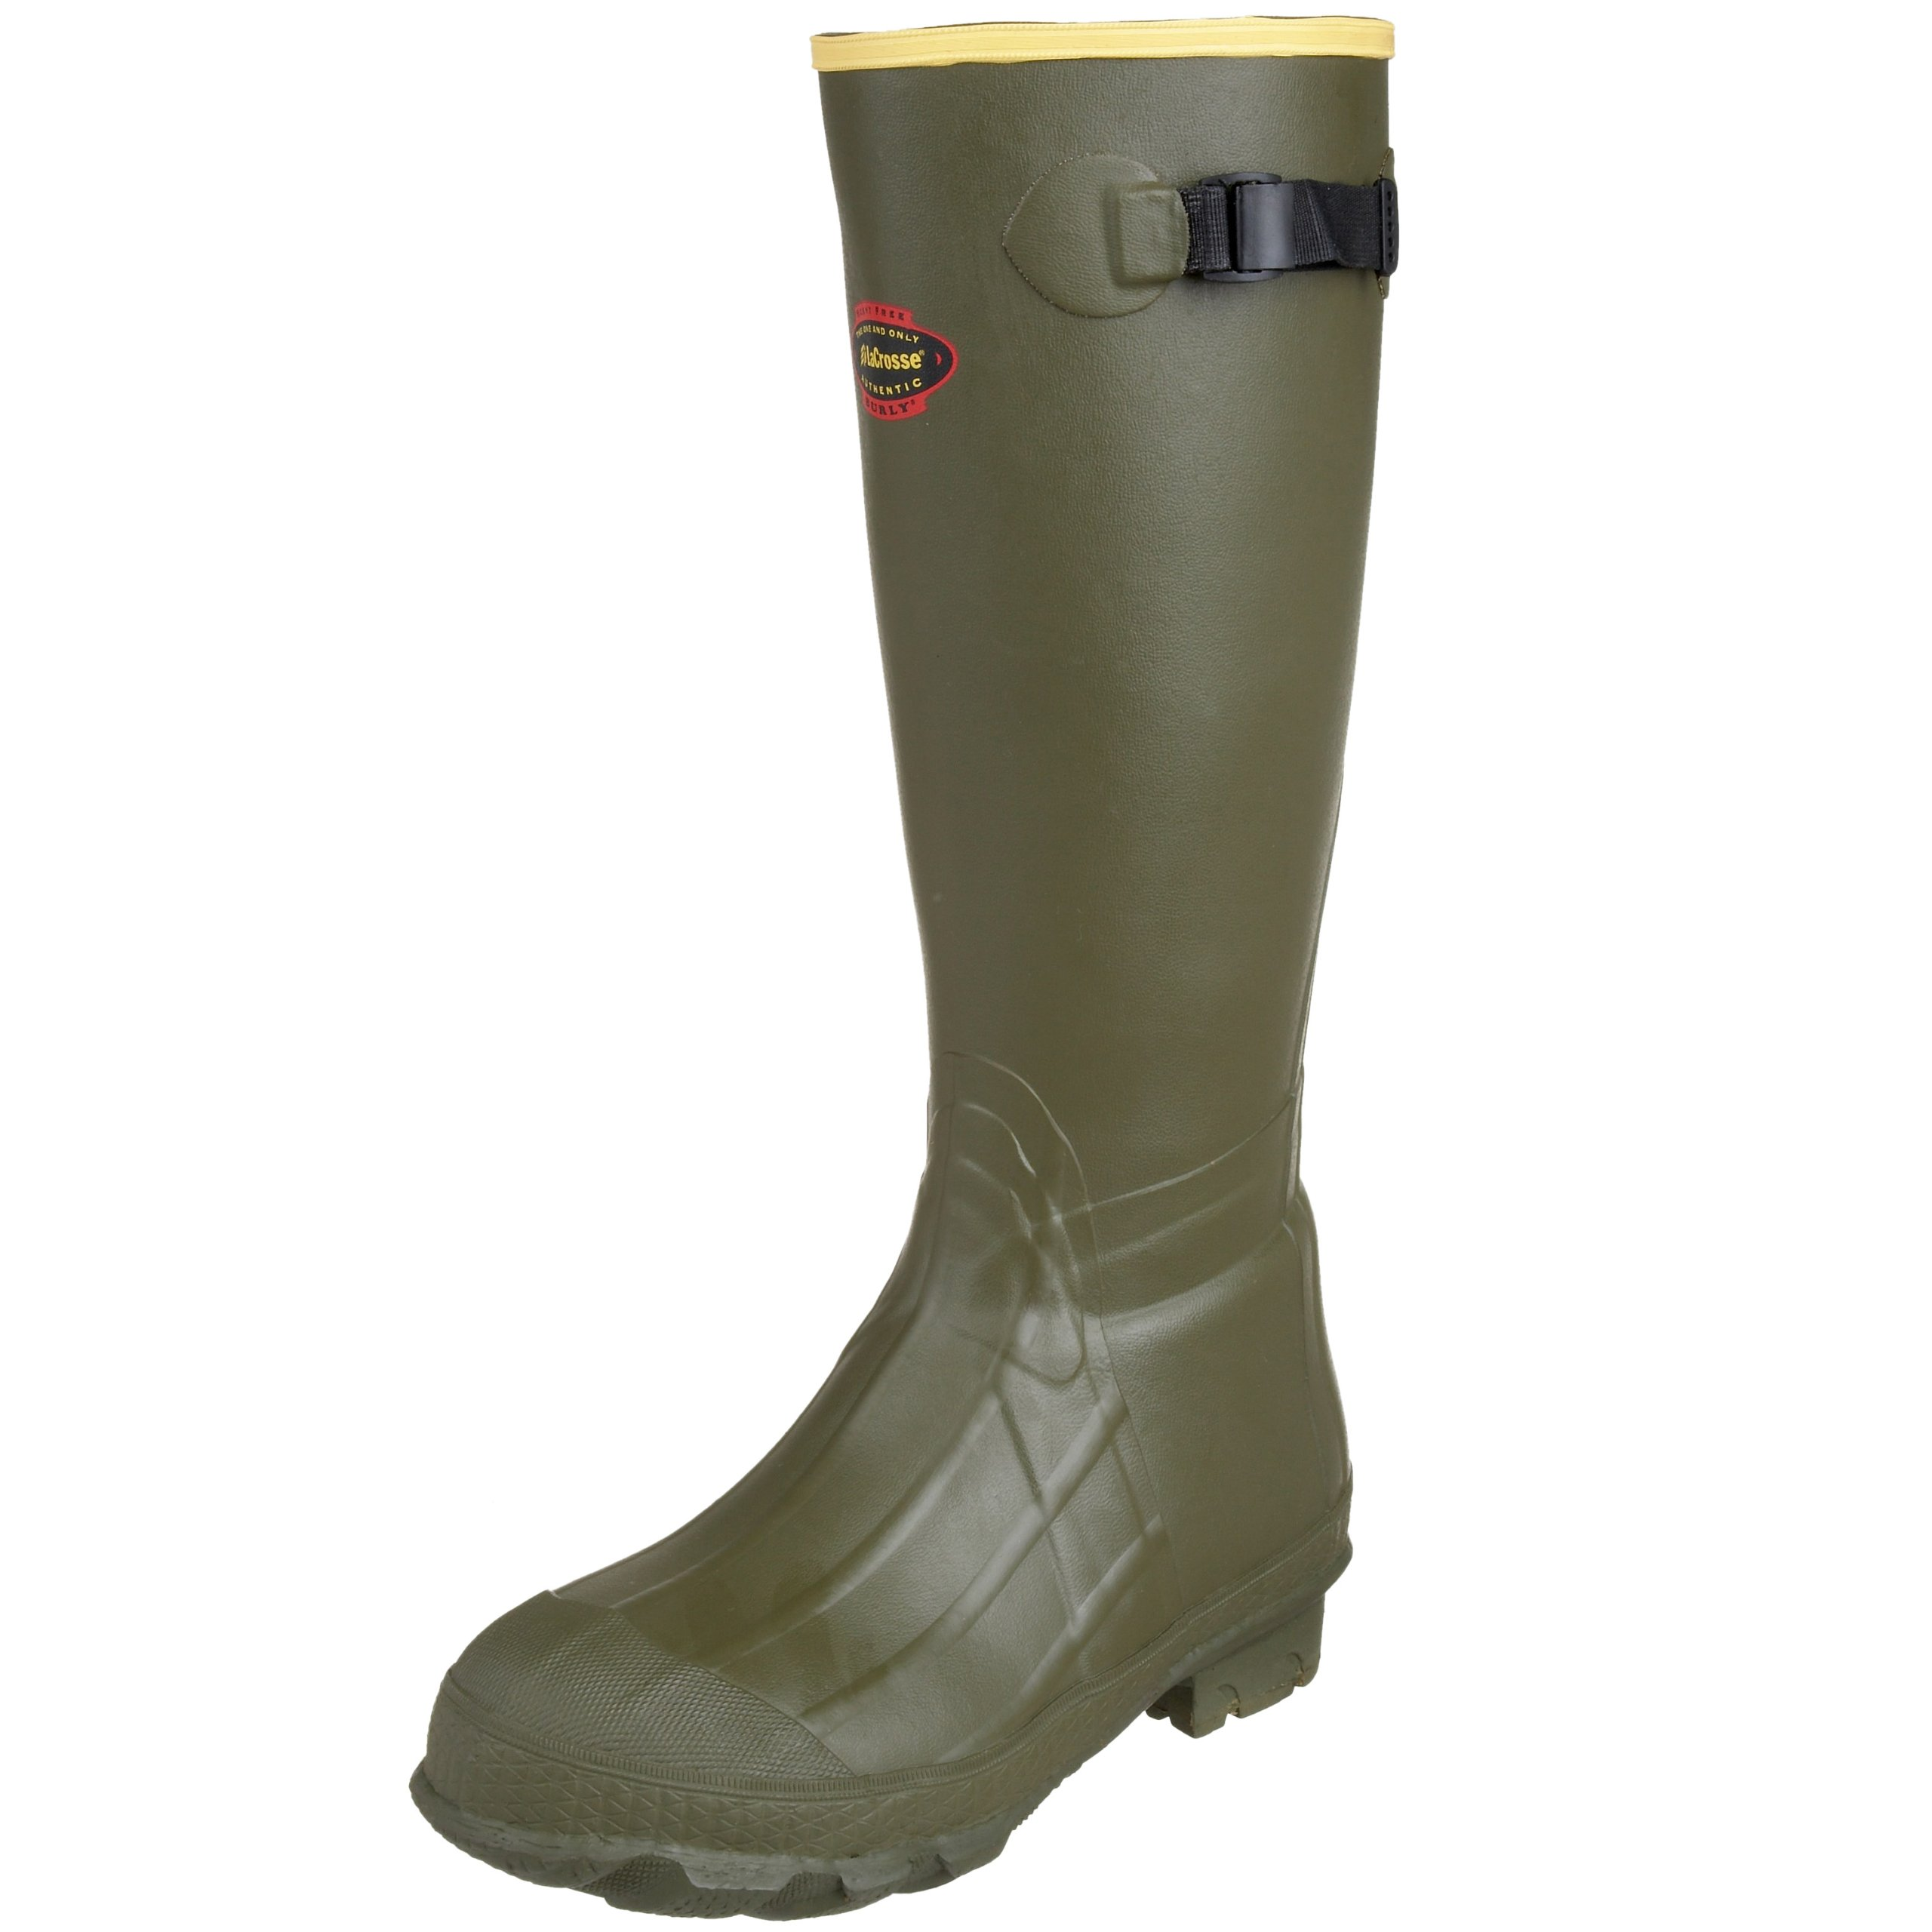 LaCrosse Men's 18'' Burly Classic Hunting Boot,OD Green,10 M US by Lacrosse